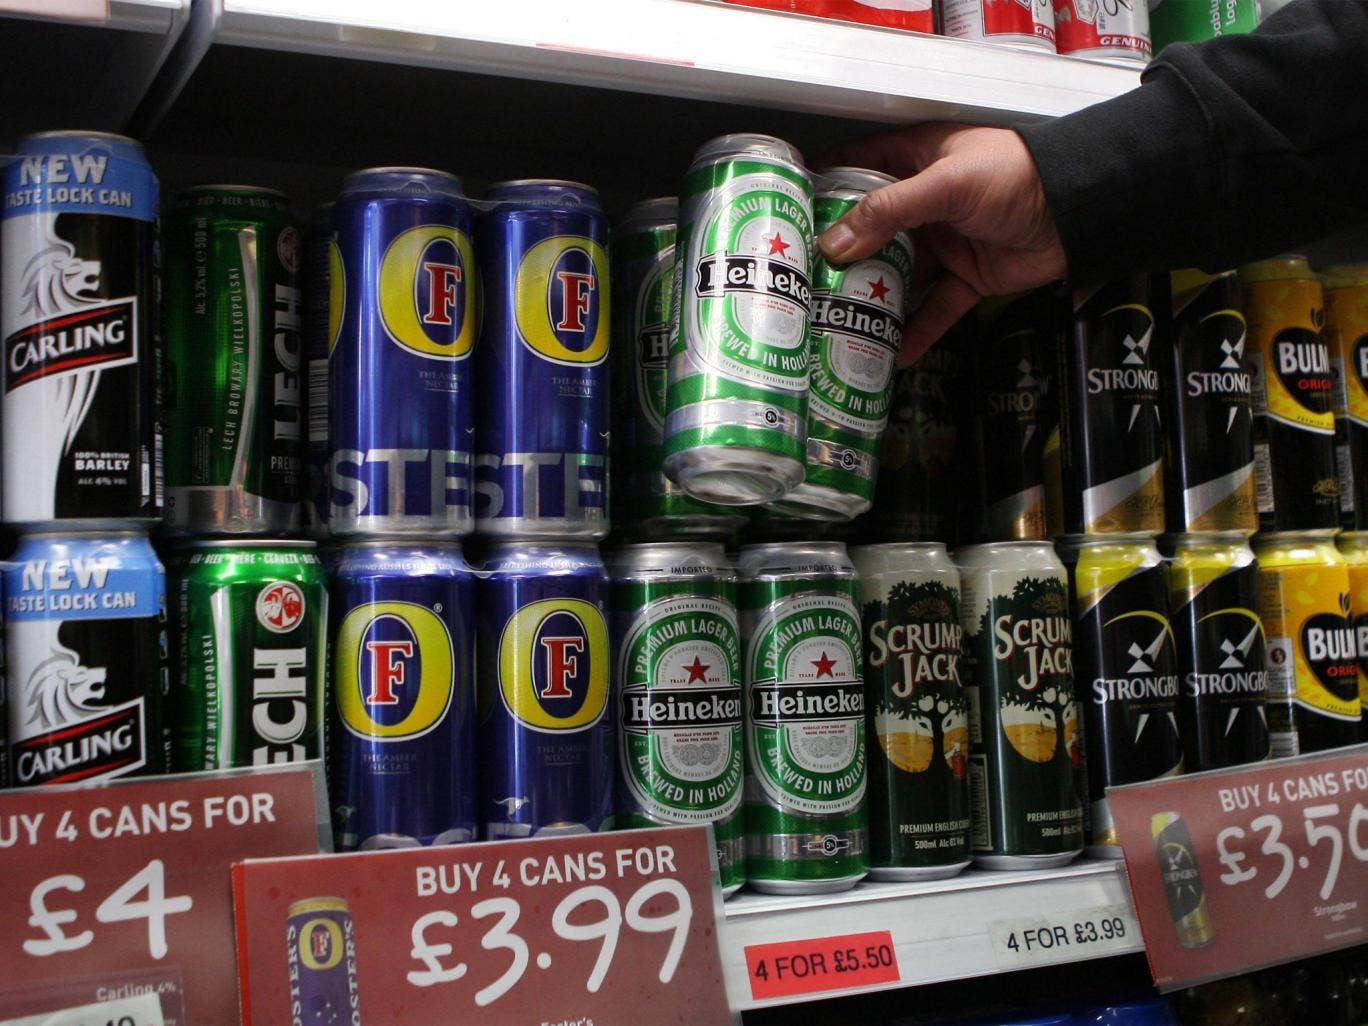 Cans of lager on supermarket shelf